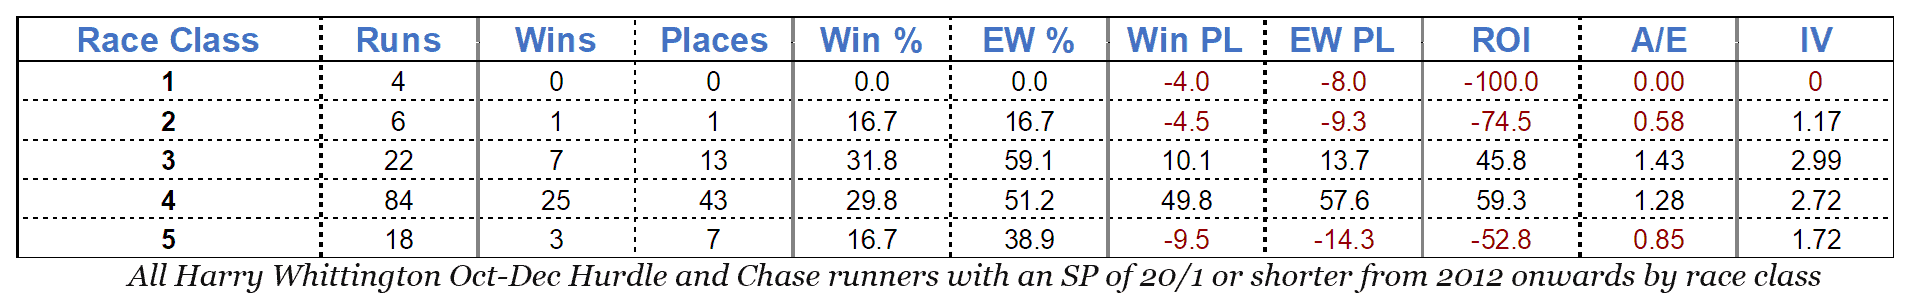 All Harry Whittington Oct-Dec Hurdle and Chase runners with an SP of 20/1 or shorter from 2012 onwards by race class